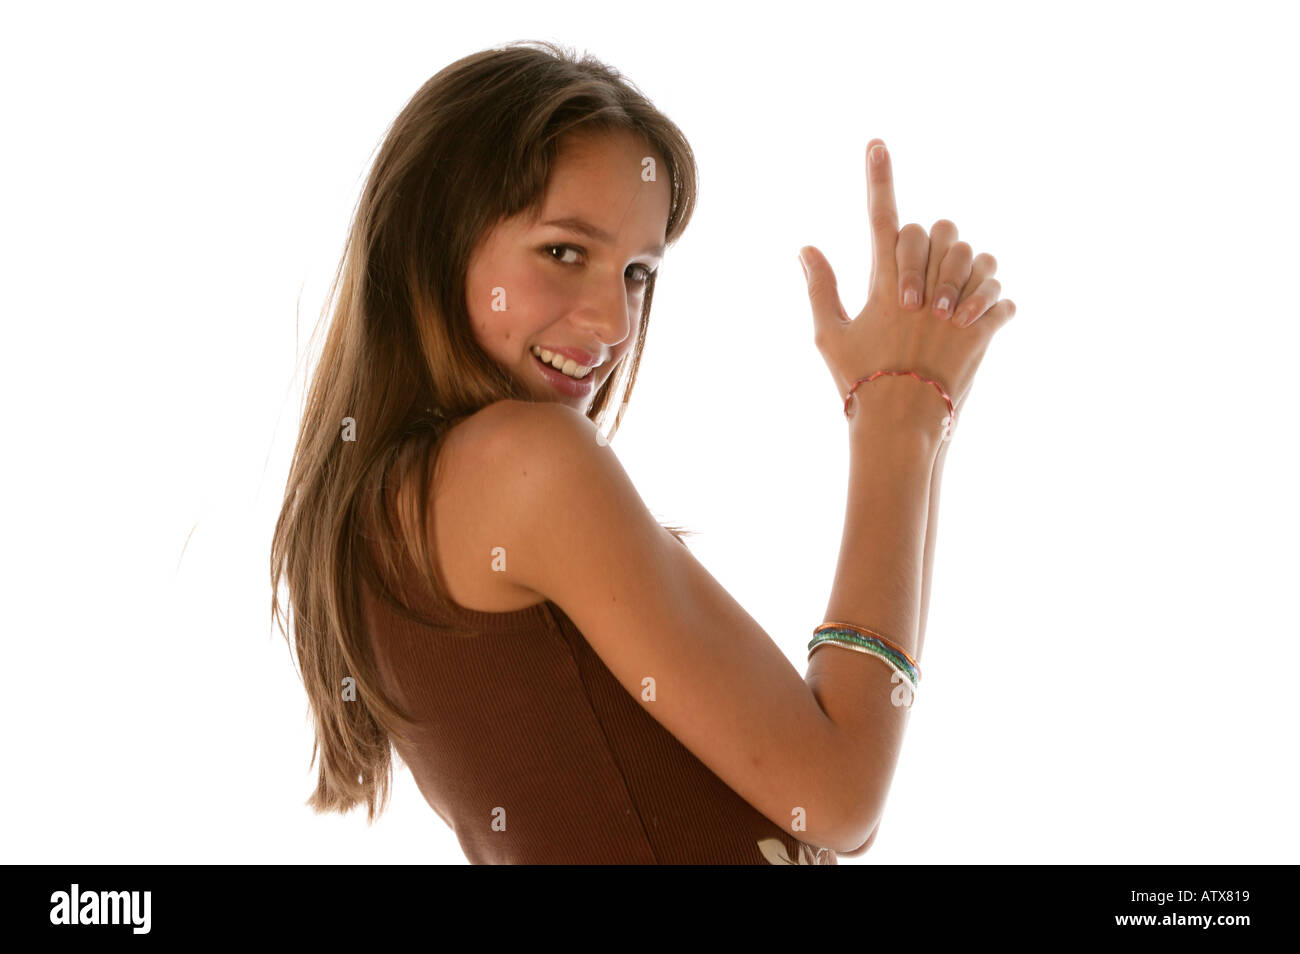 Young woman looking at camera gesture from 007 movie - Stock Image